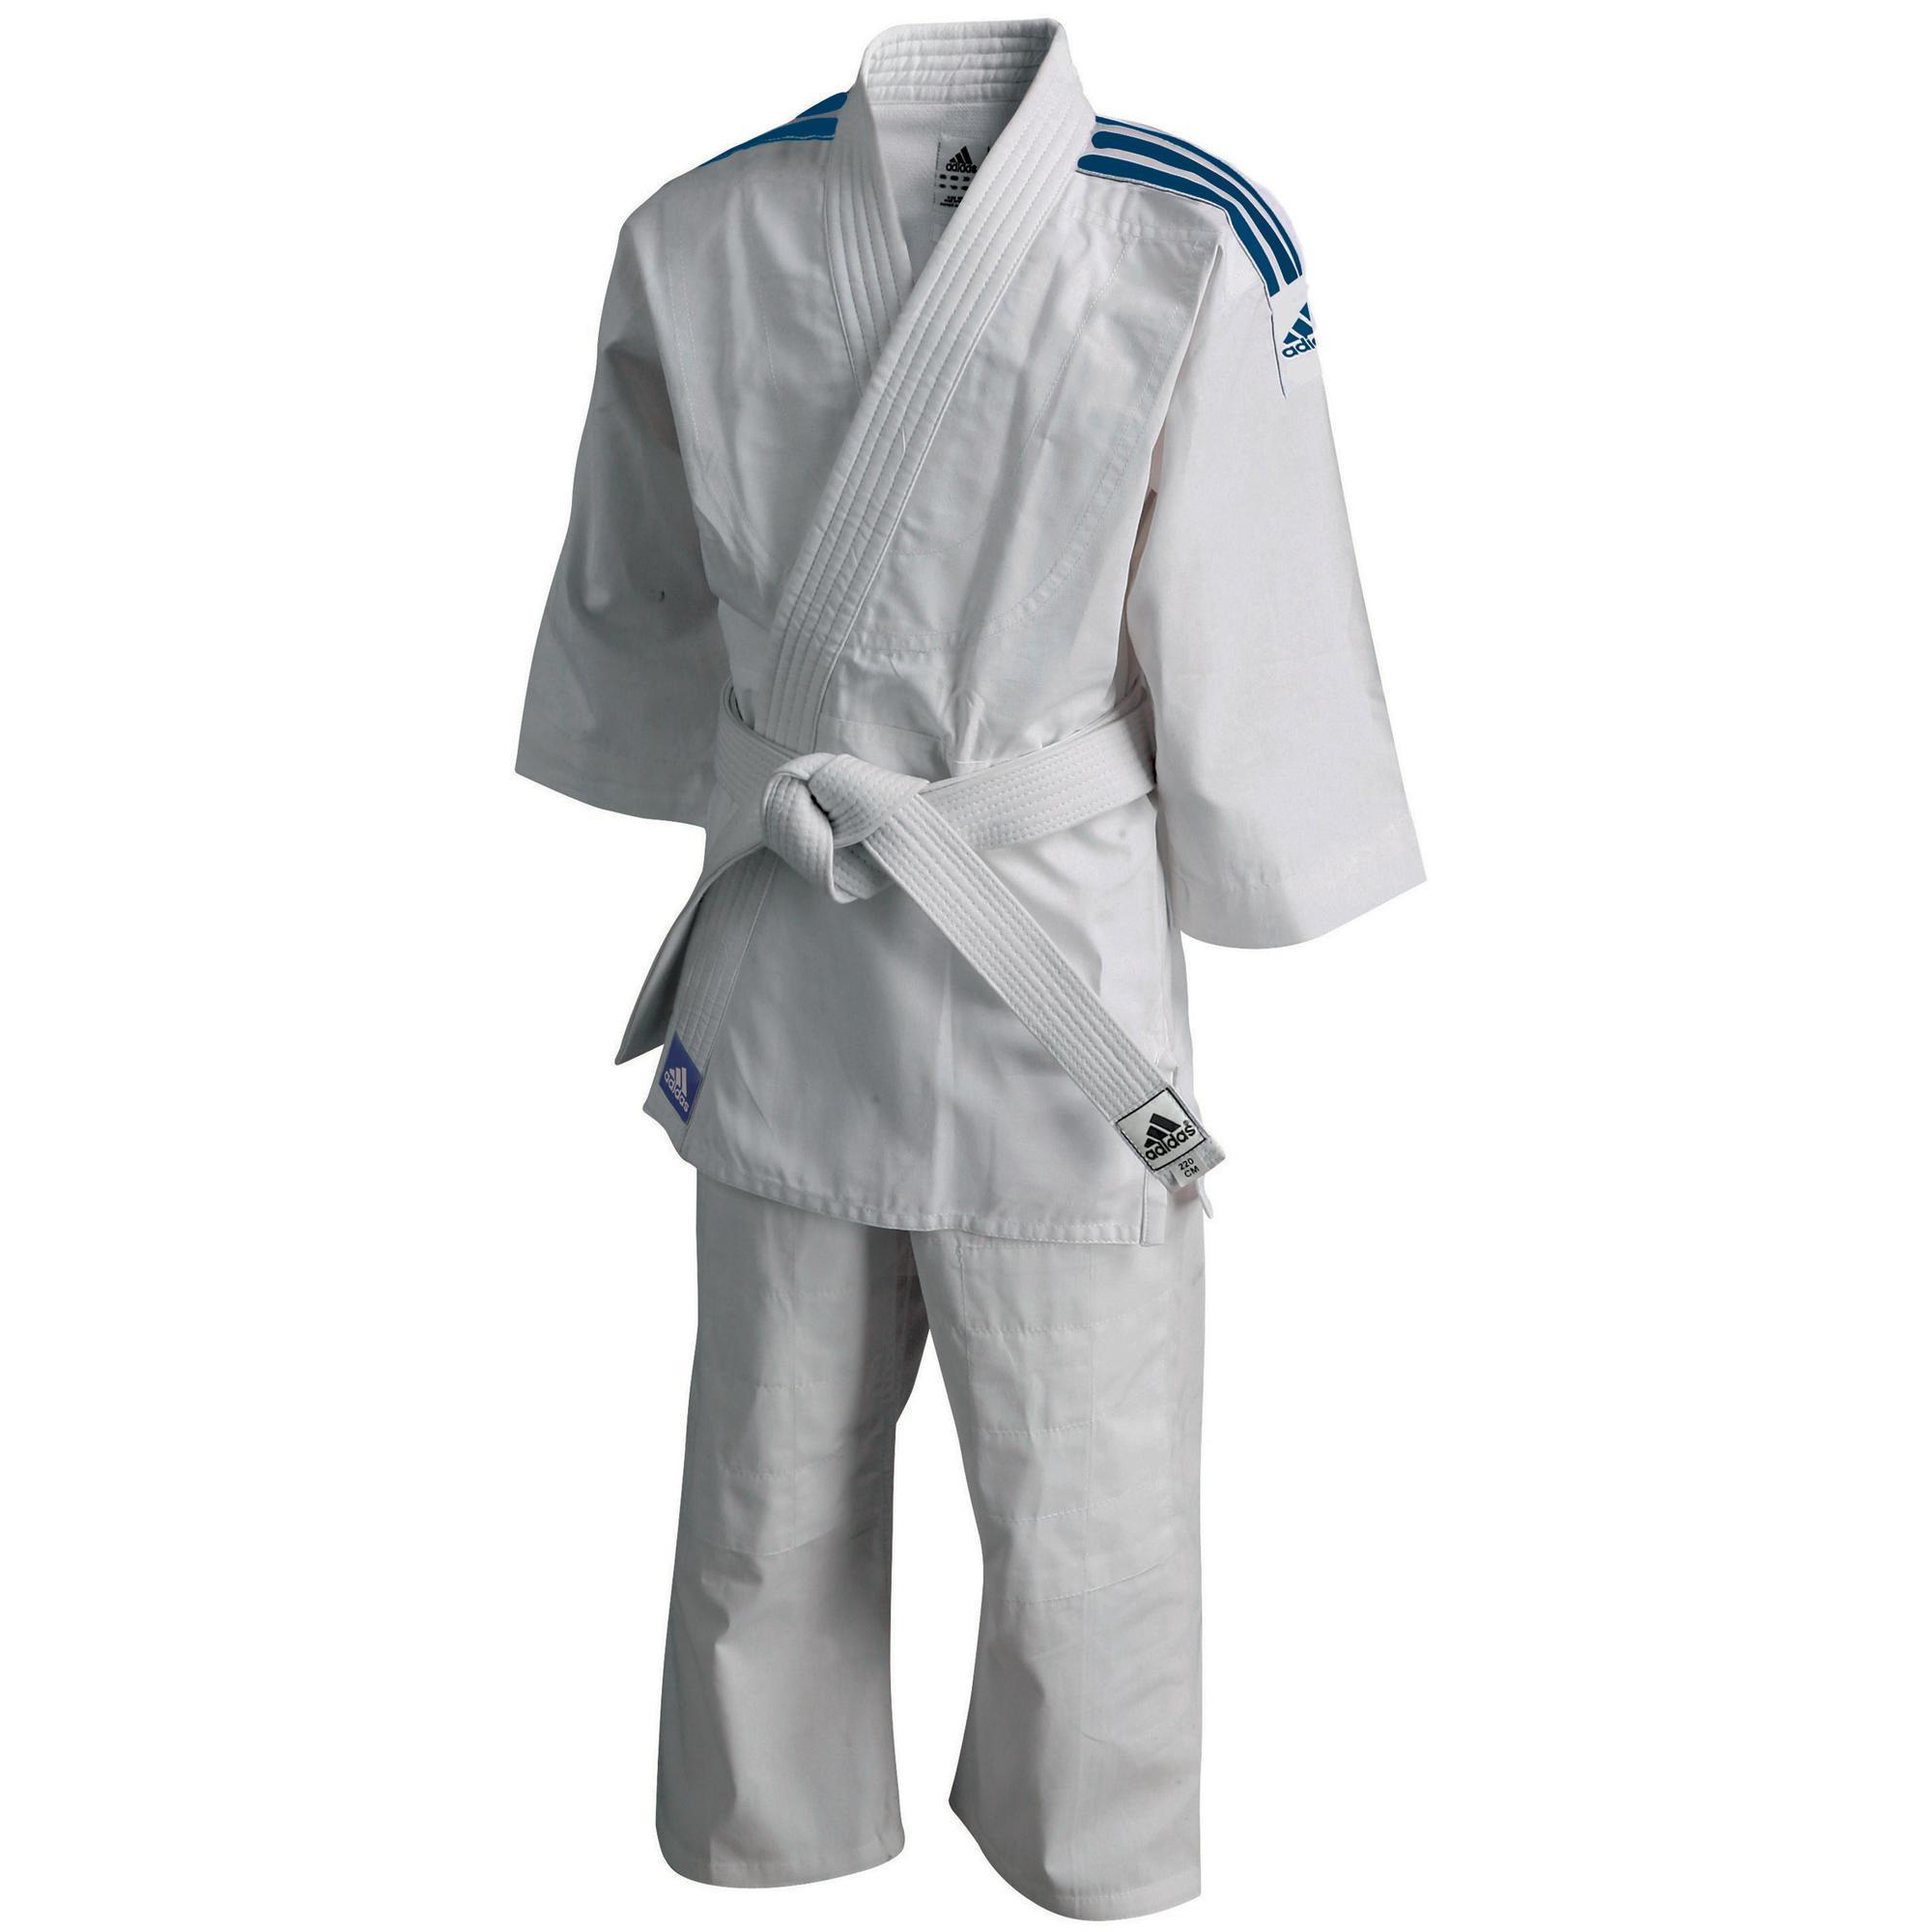 popular brand outlet online outlet store KIMONO DE JUDO ENFANT EVOLUTIF J200E